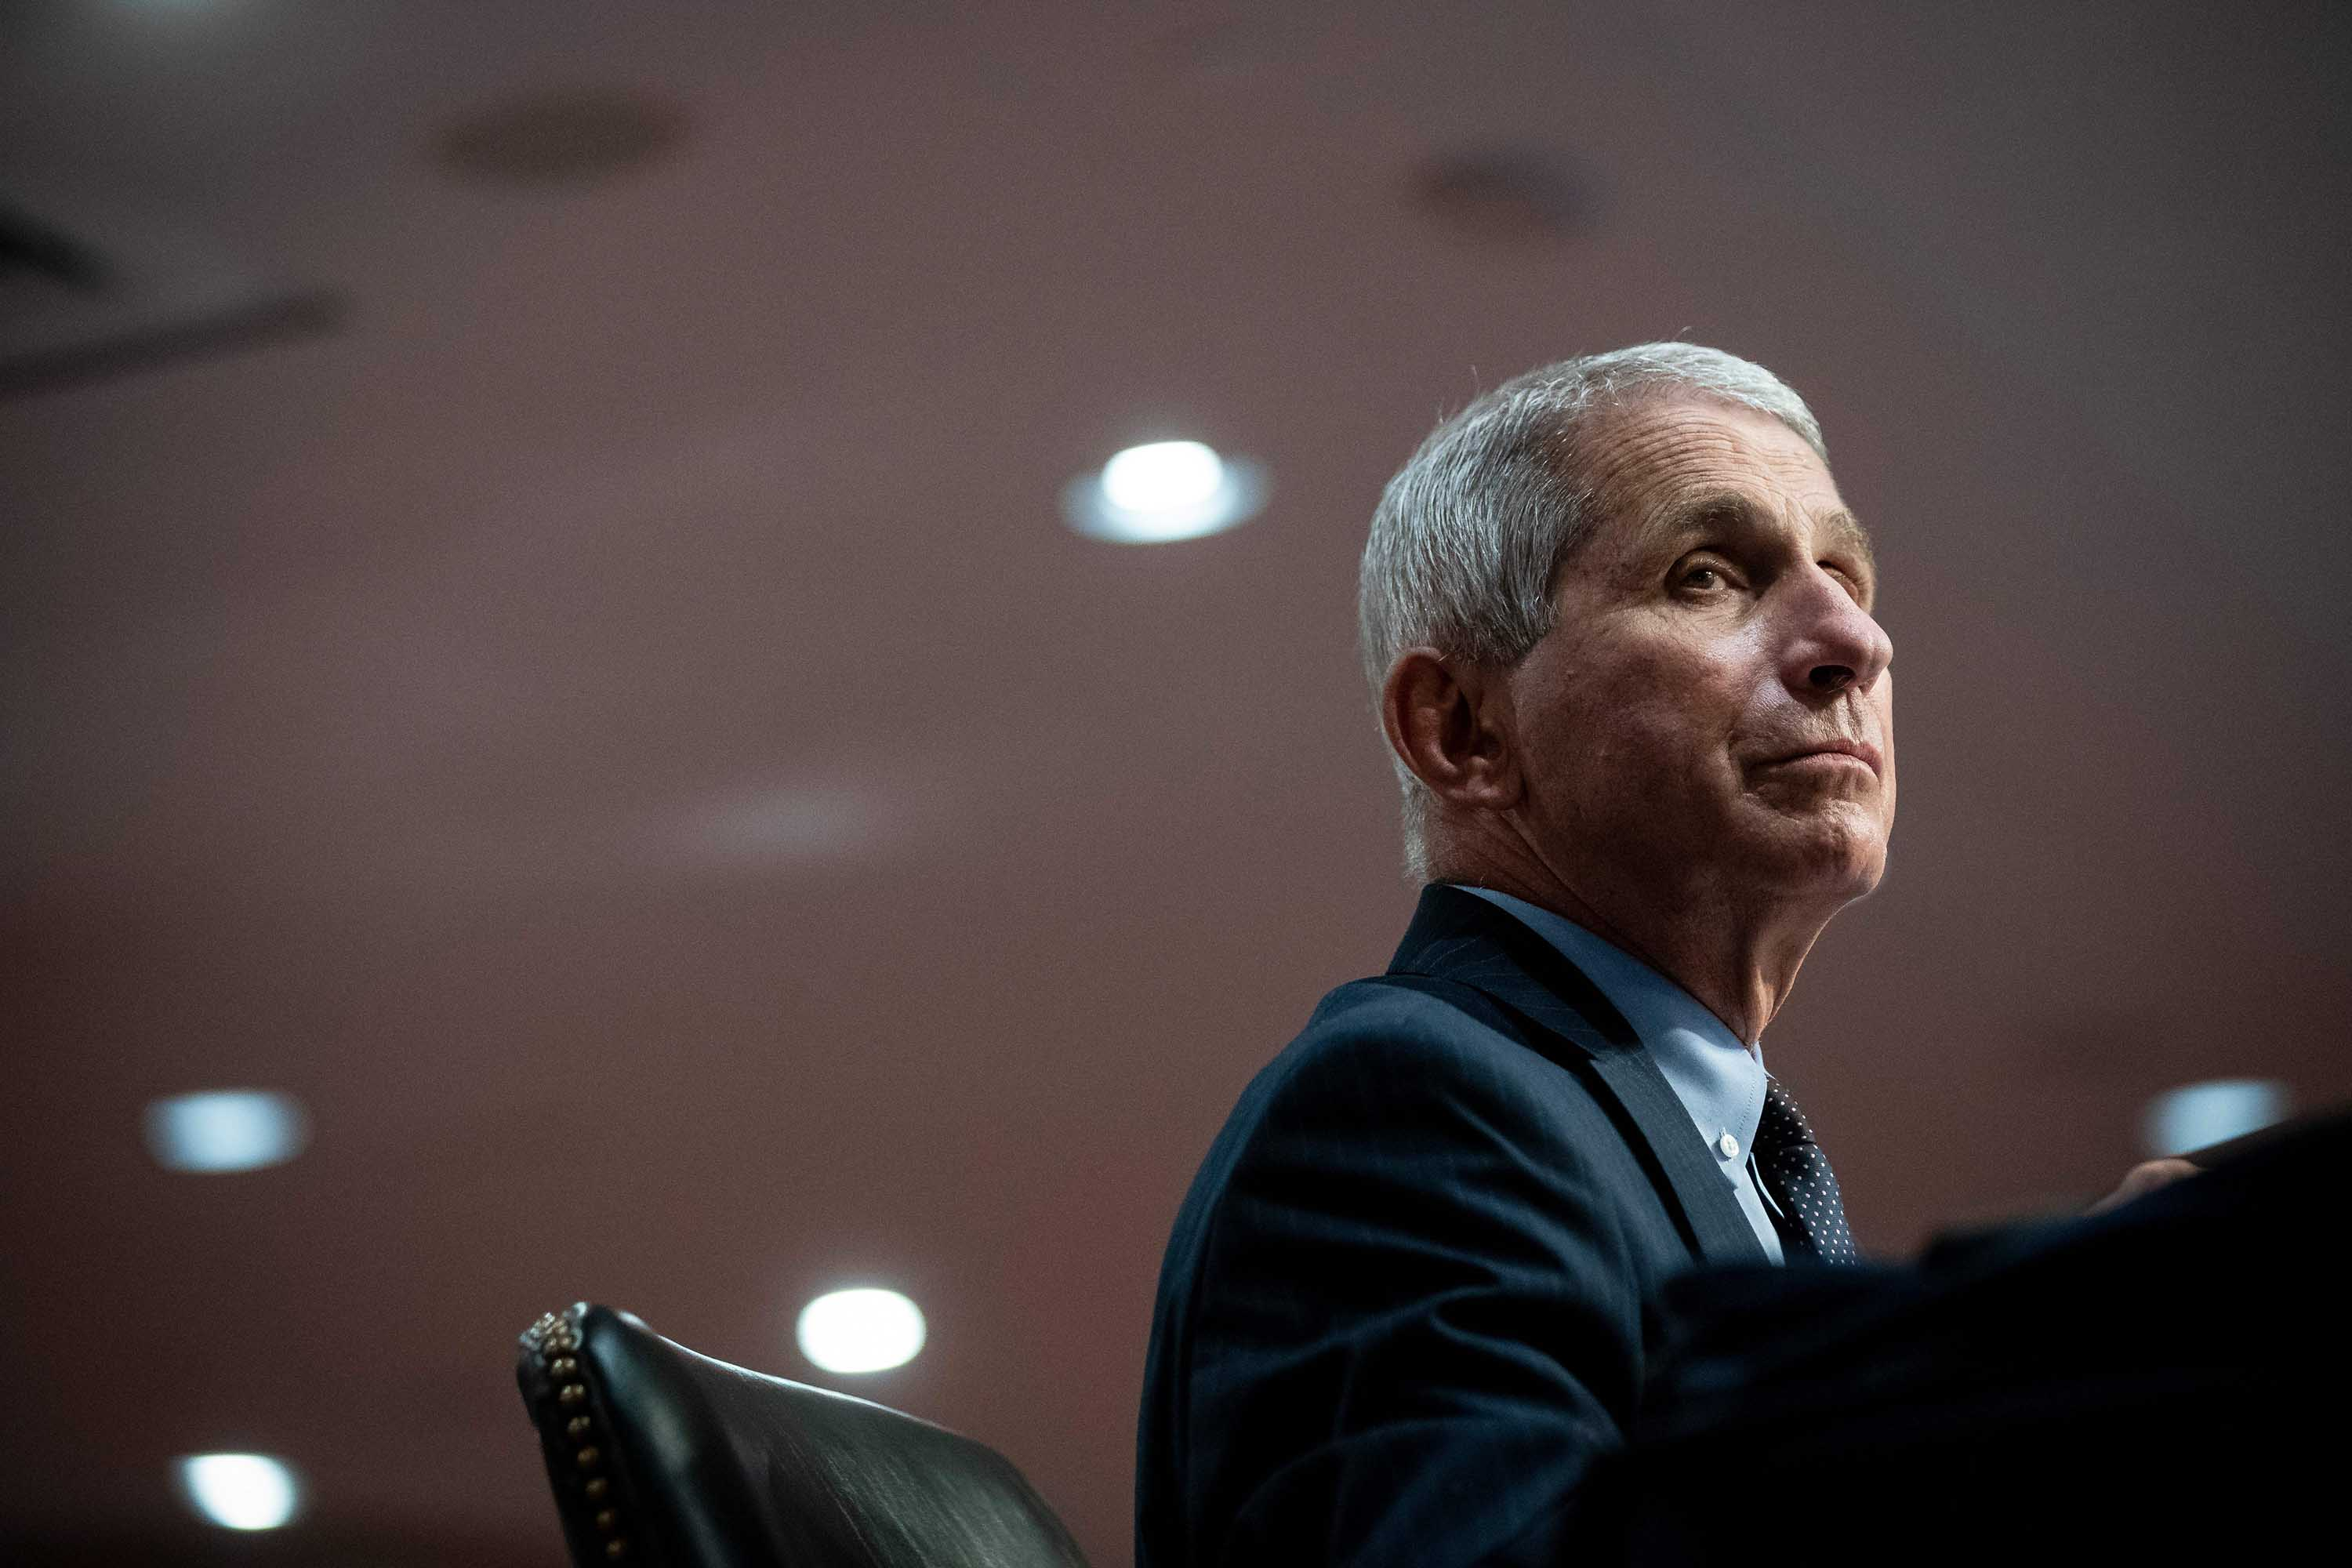 Dr. Anthony Fauci, director of the National Institute of Allergy and Infectious Diseases, listens during a Senate Health, Education, Labor and Pensions Committee hearing in Washington, DC, on June 30.